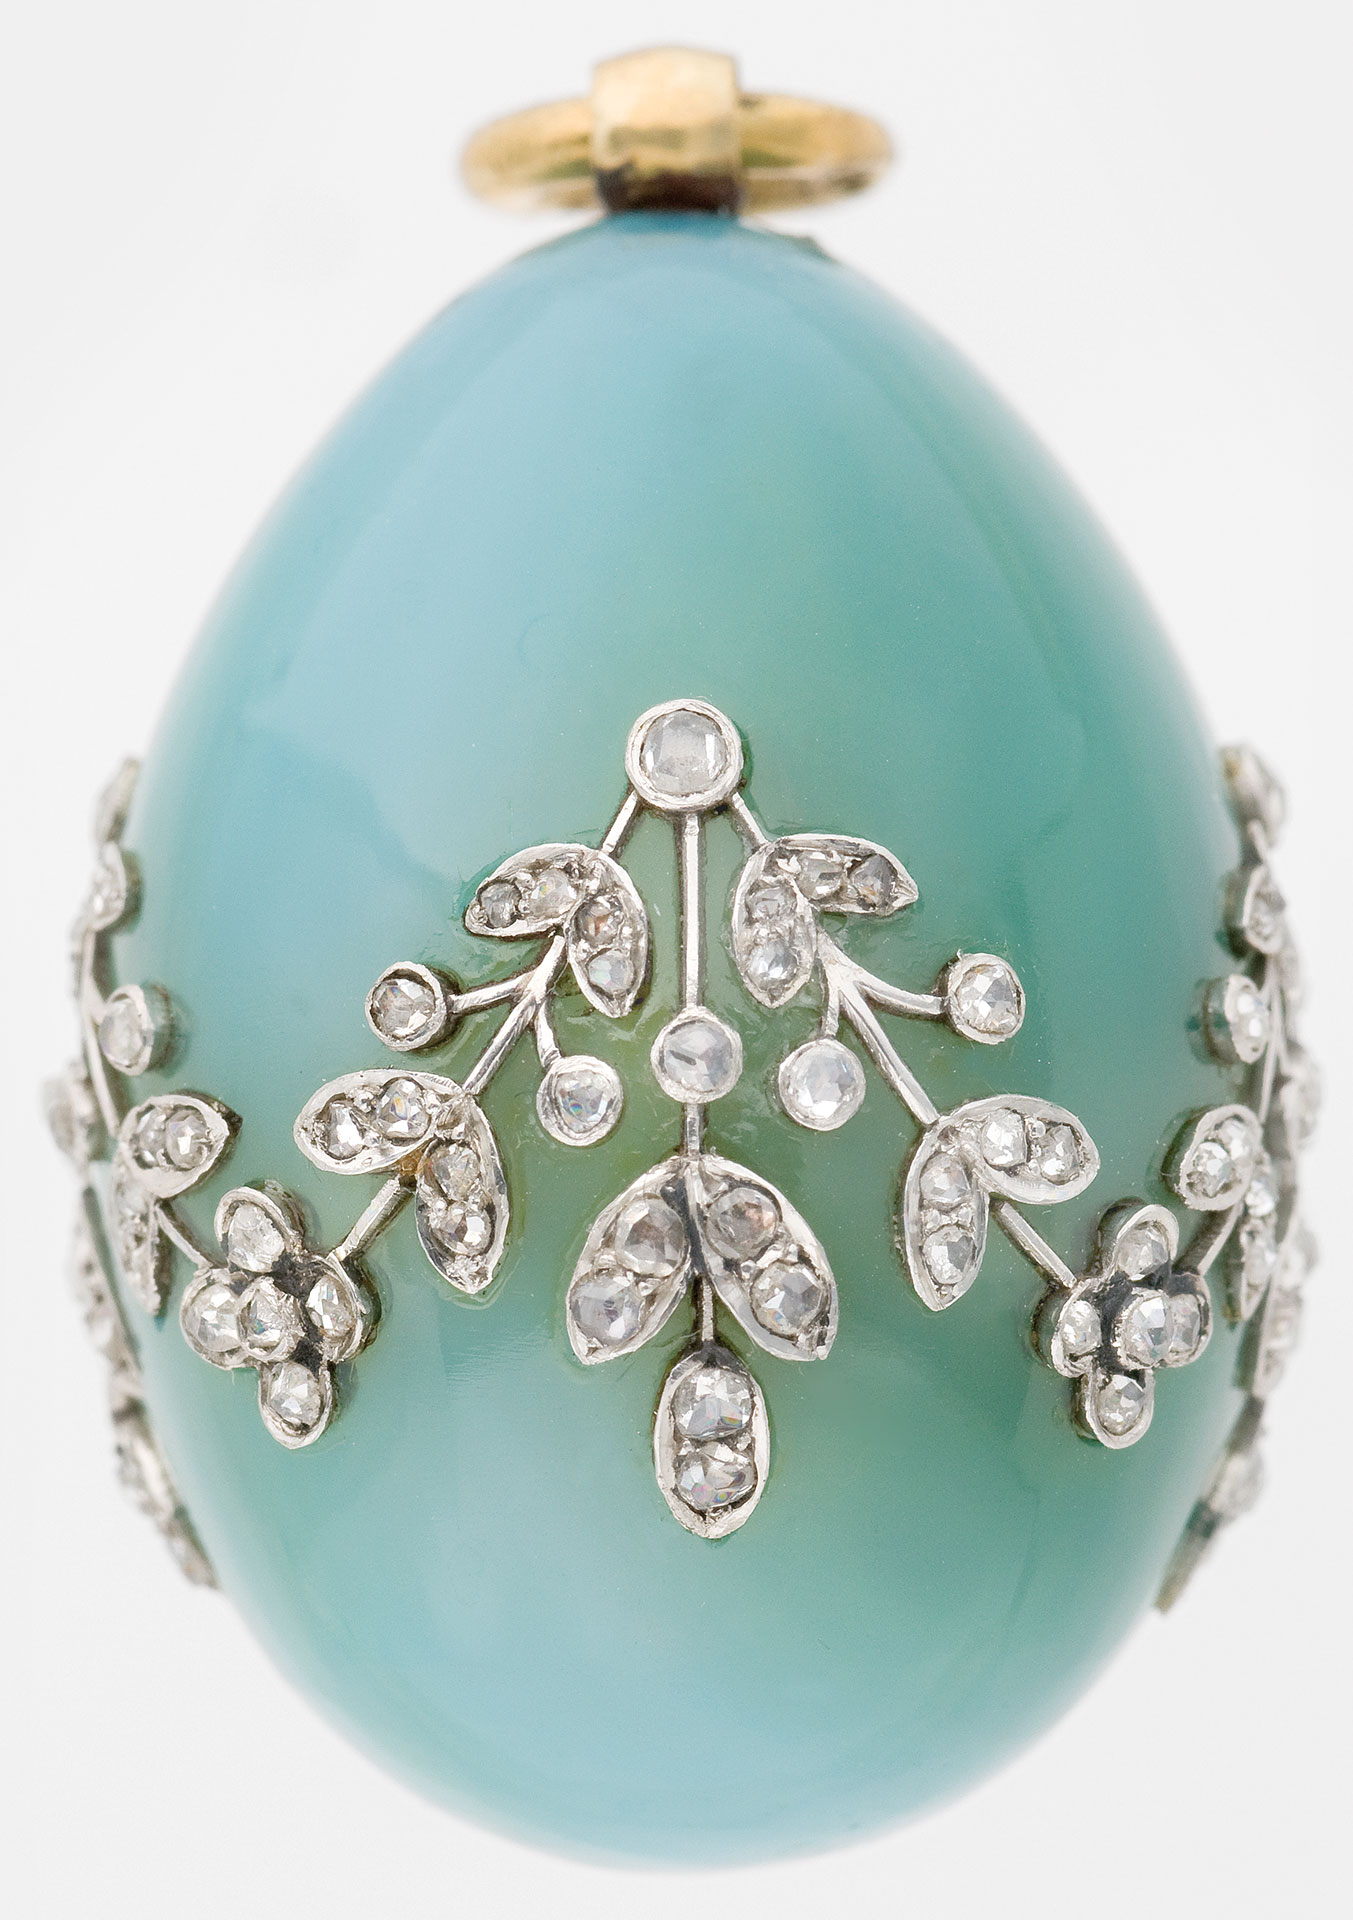 Carl Fabergé (1846–1920), Fabergé workshop, Mikhail Perkhin (workmaster).  Miniature Easter Egg Pendant , about 1900. Chalcedony, gold, white gold, diamonds. 3.2 x 2.2 cm. Virginia Museum of Fine Arts, Bequest of Lillian Thomas Pratt.  Also featured in   Faberge, Jeweller to the Czars   last year at the Montreal Museum of Fine Arts.  (Photo courtesy The Montreal Museum of Fine Arts)